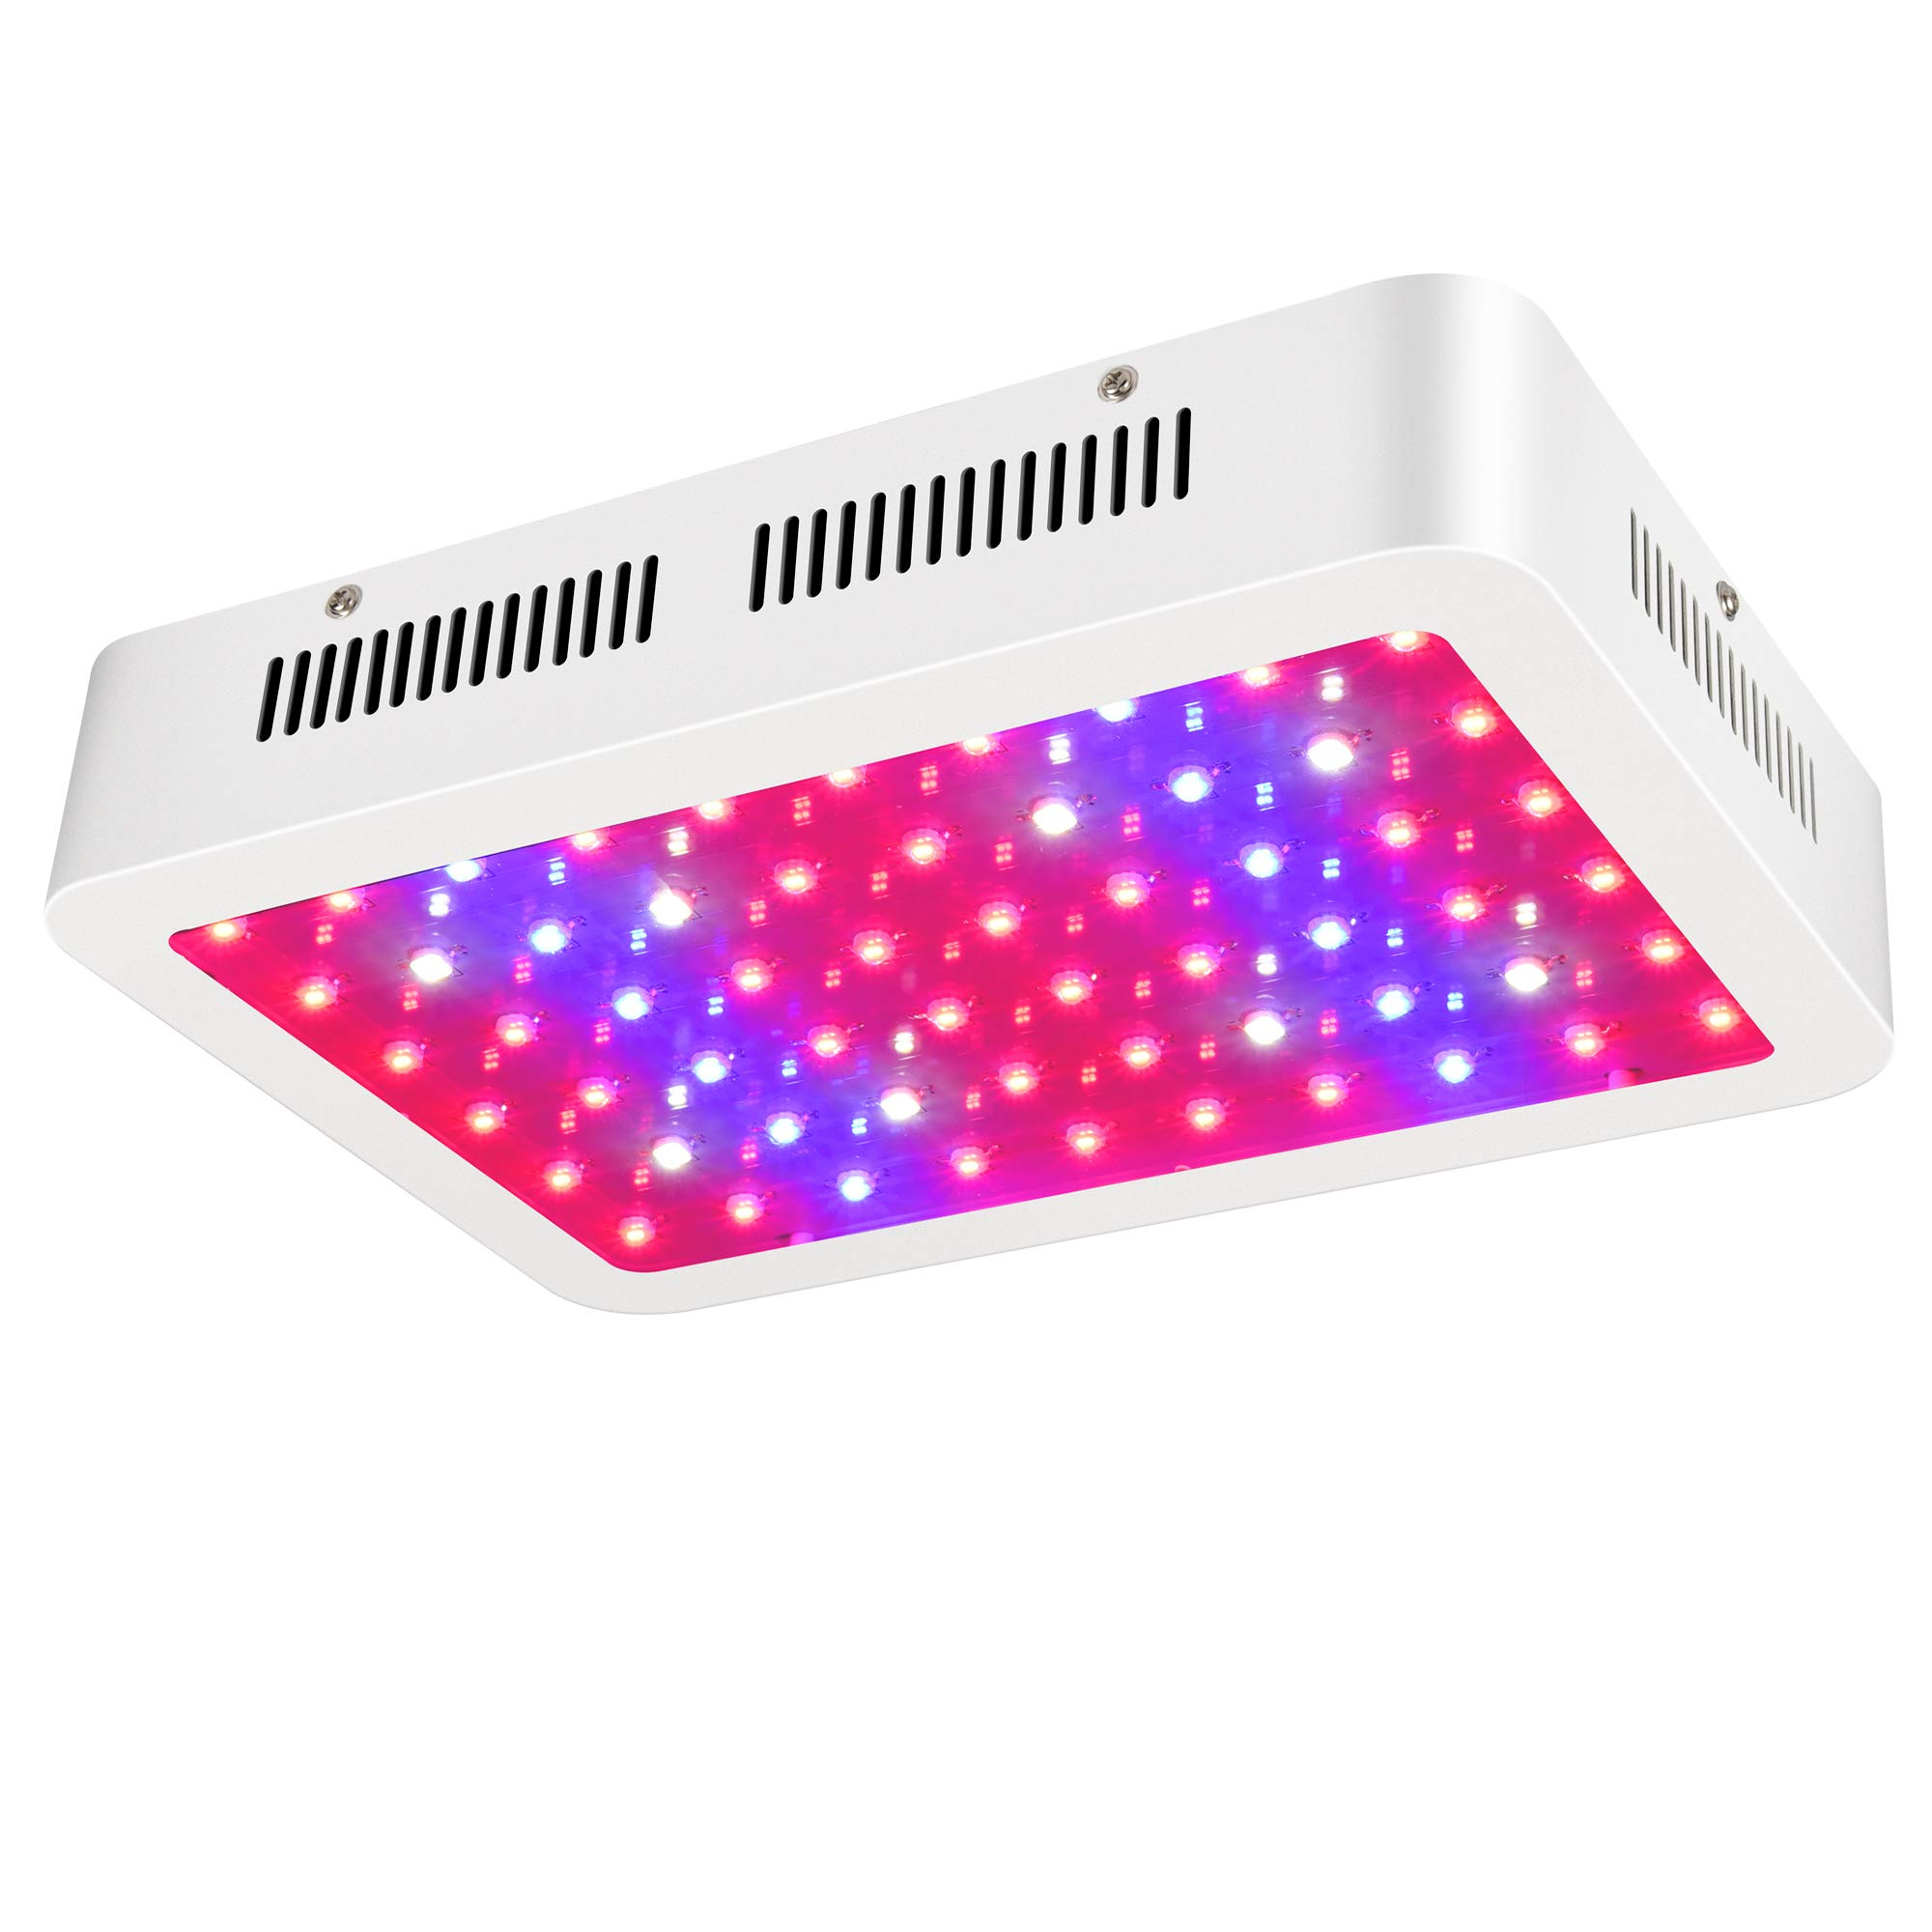 ZXMEAN 600W LED Plant Grow Light Dual Chips Full Spectrum with Adjustable Rope with UV and IR for Indoor Plants Veg and Flower, Input 85V to 265V